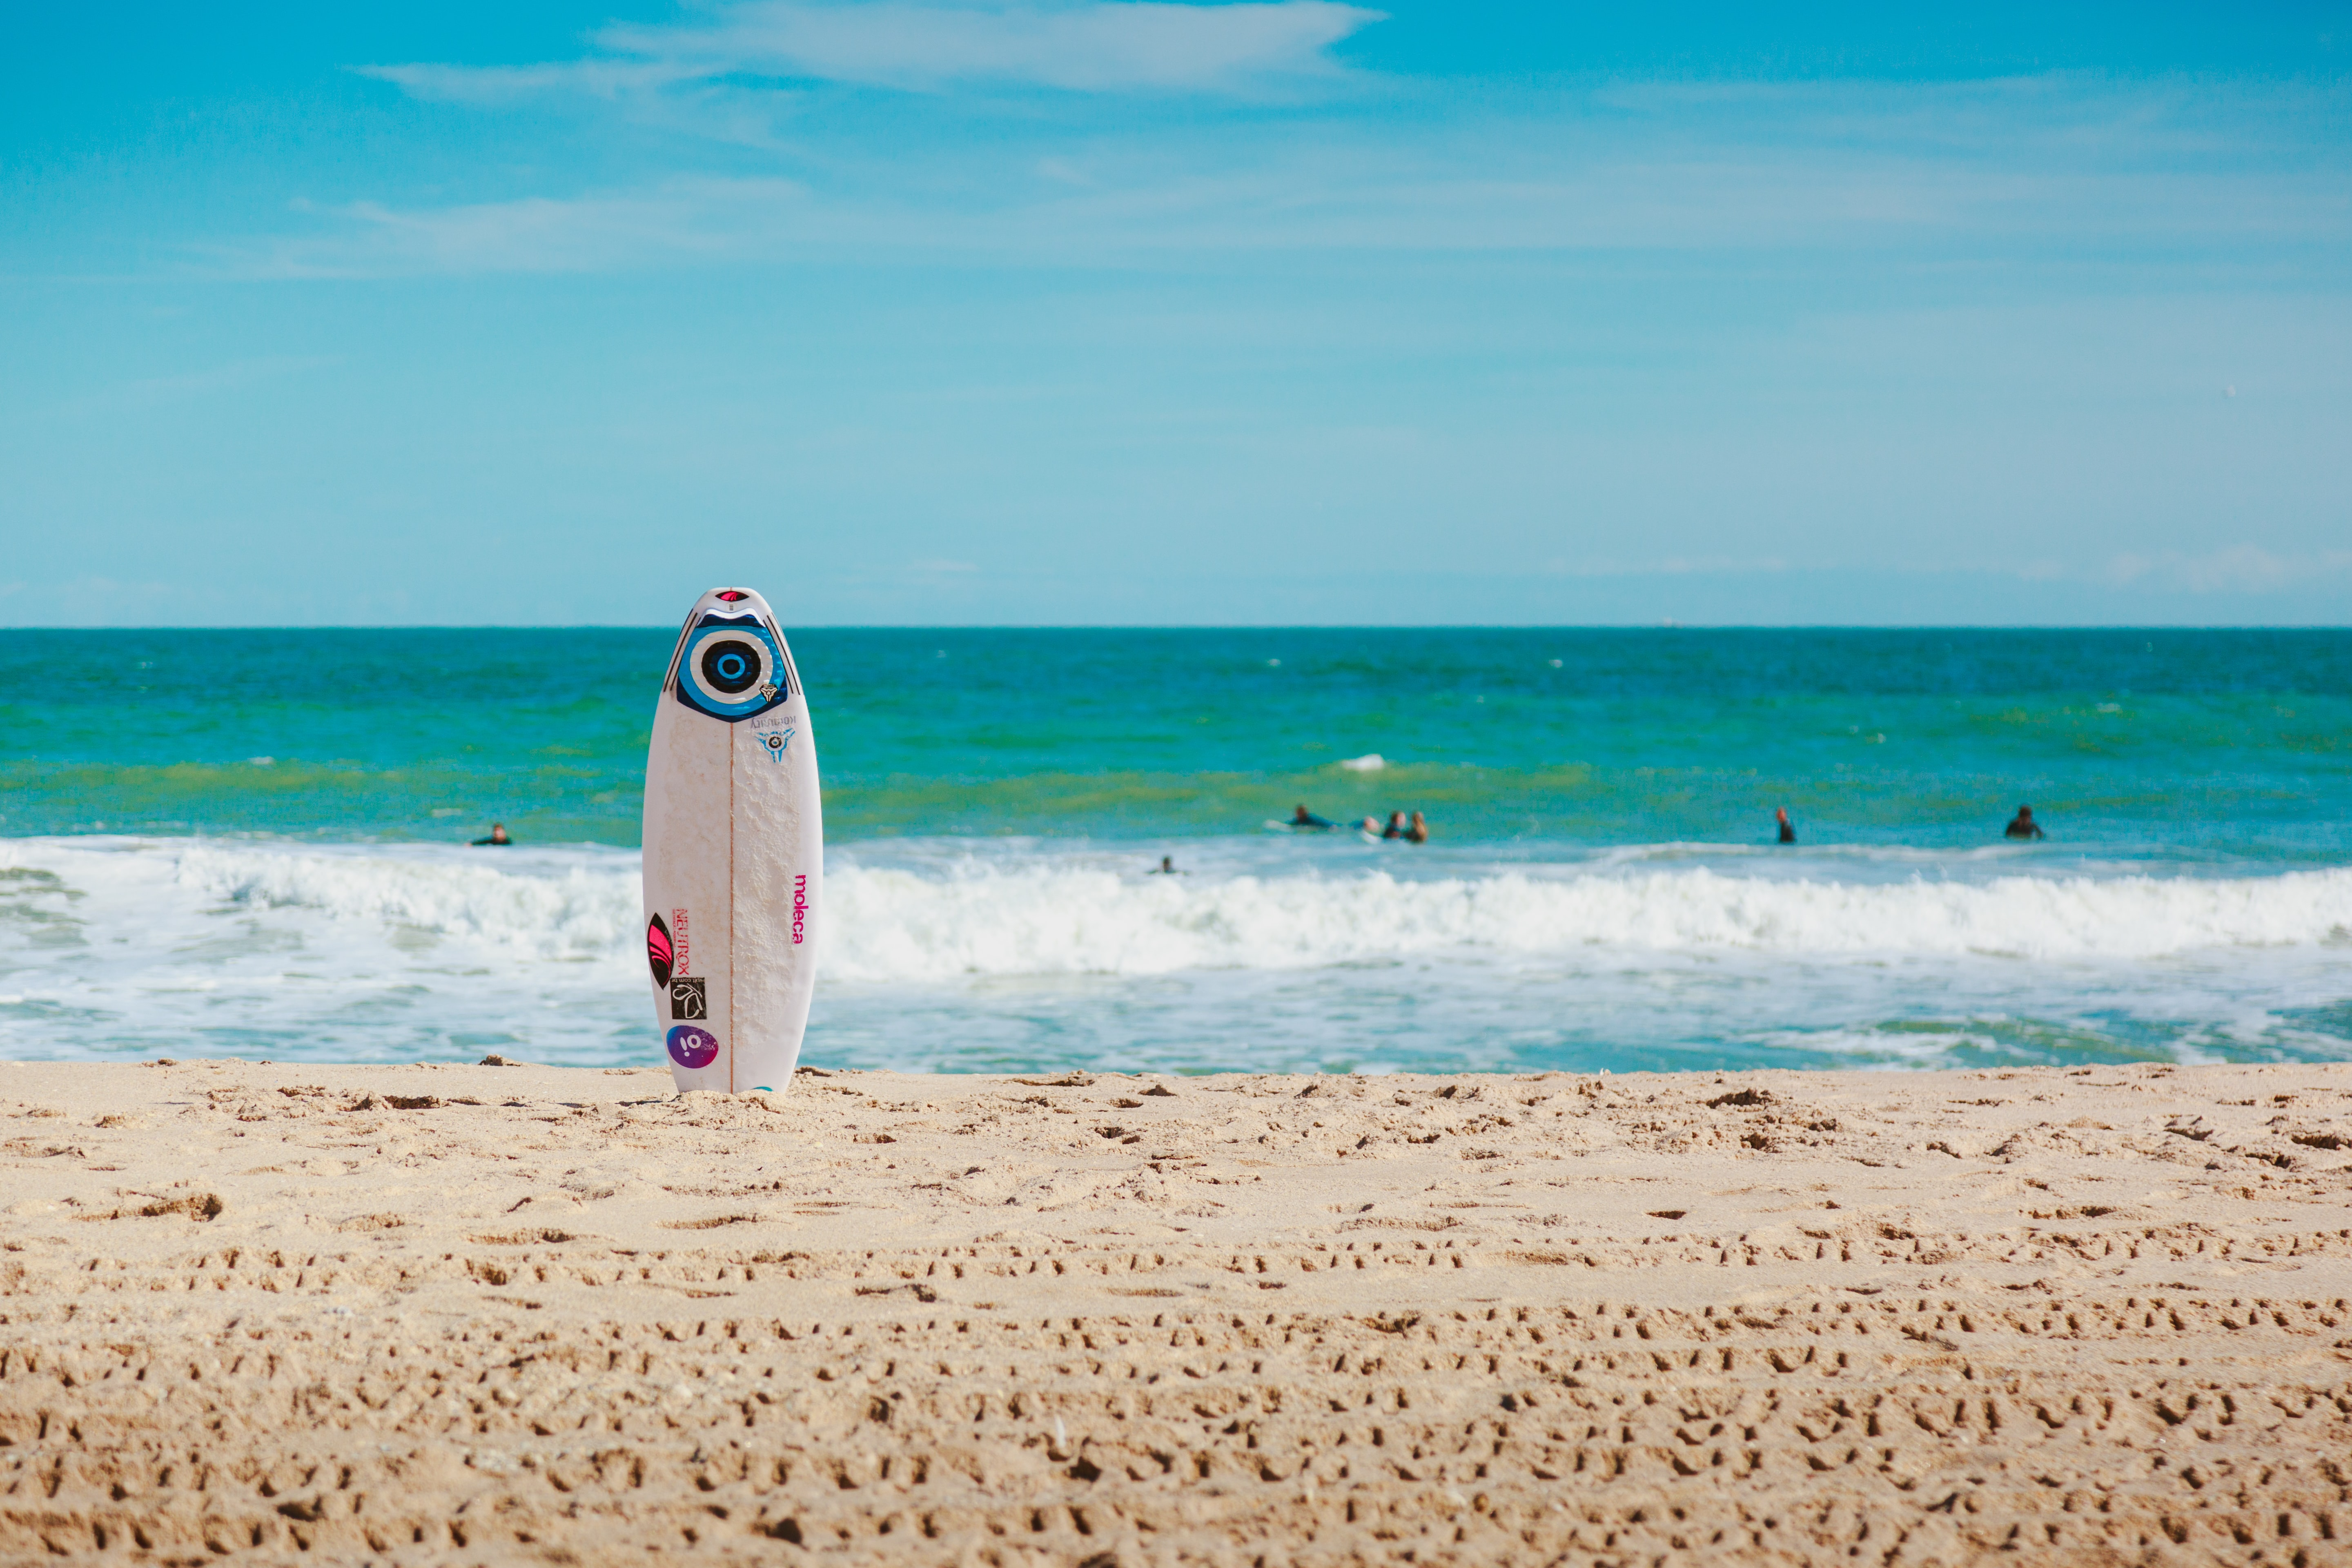 white surfboard vertically standing on seashore